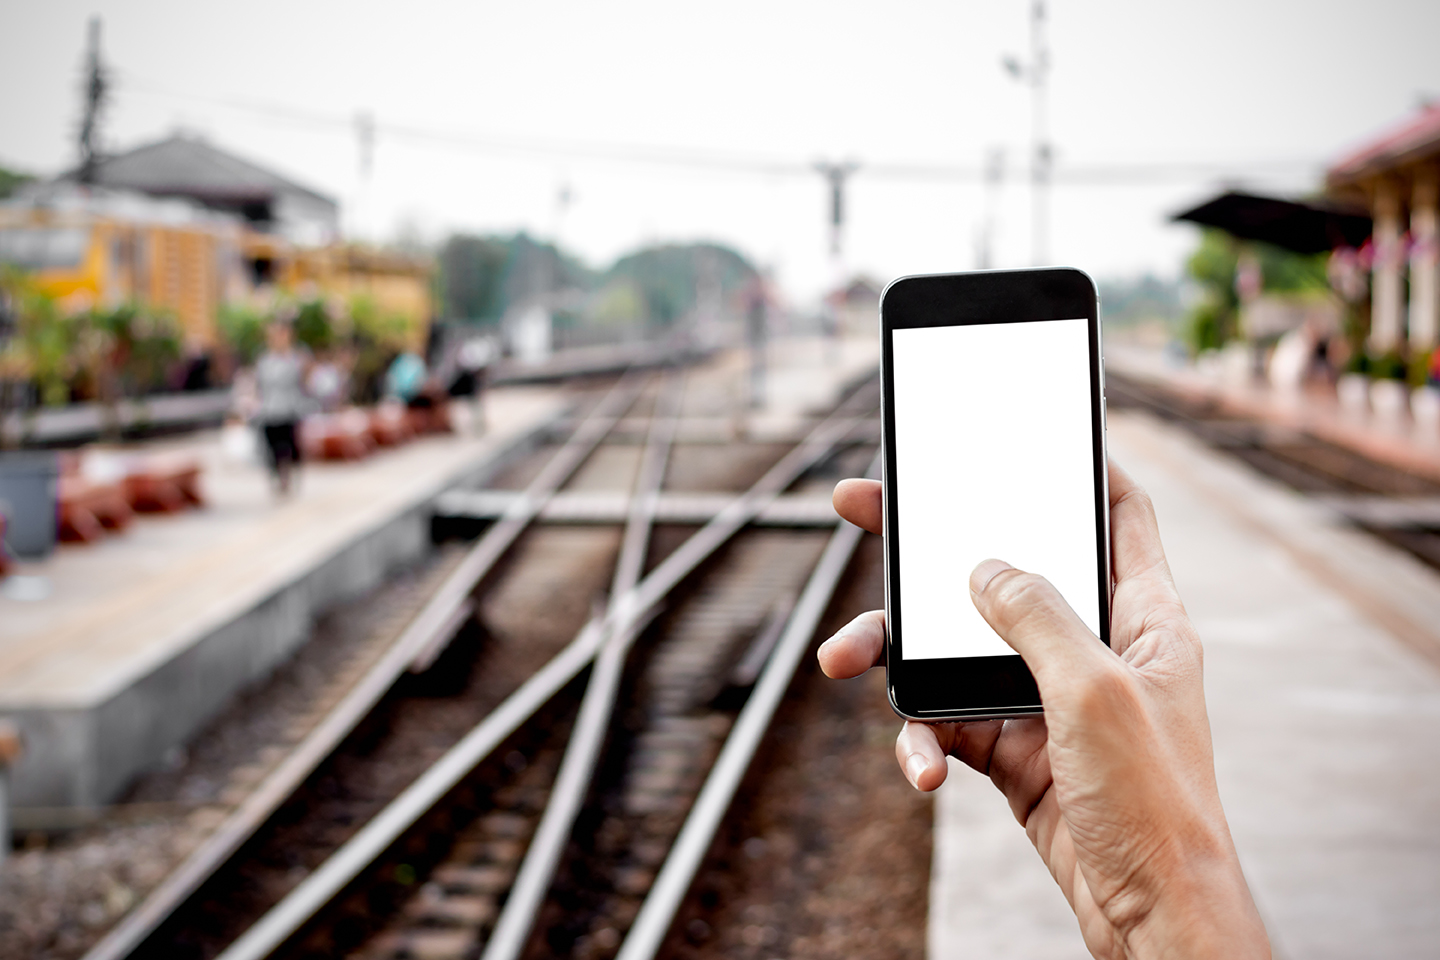 Commuter uses app at train station